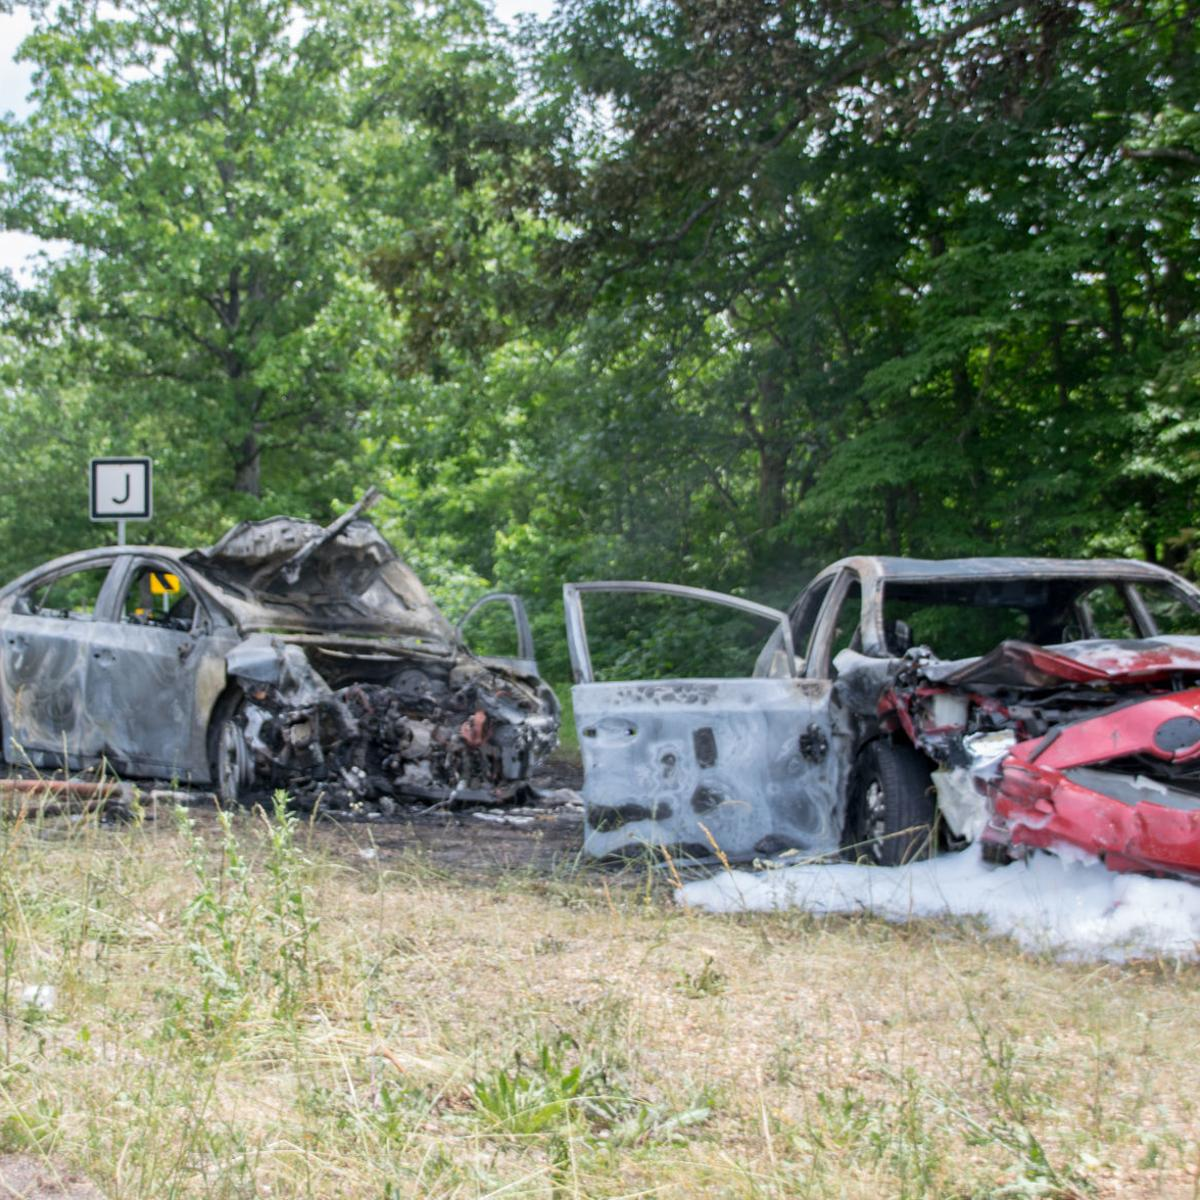 Collision results in fire, injuries | Daily Journal News